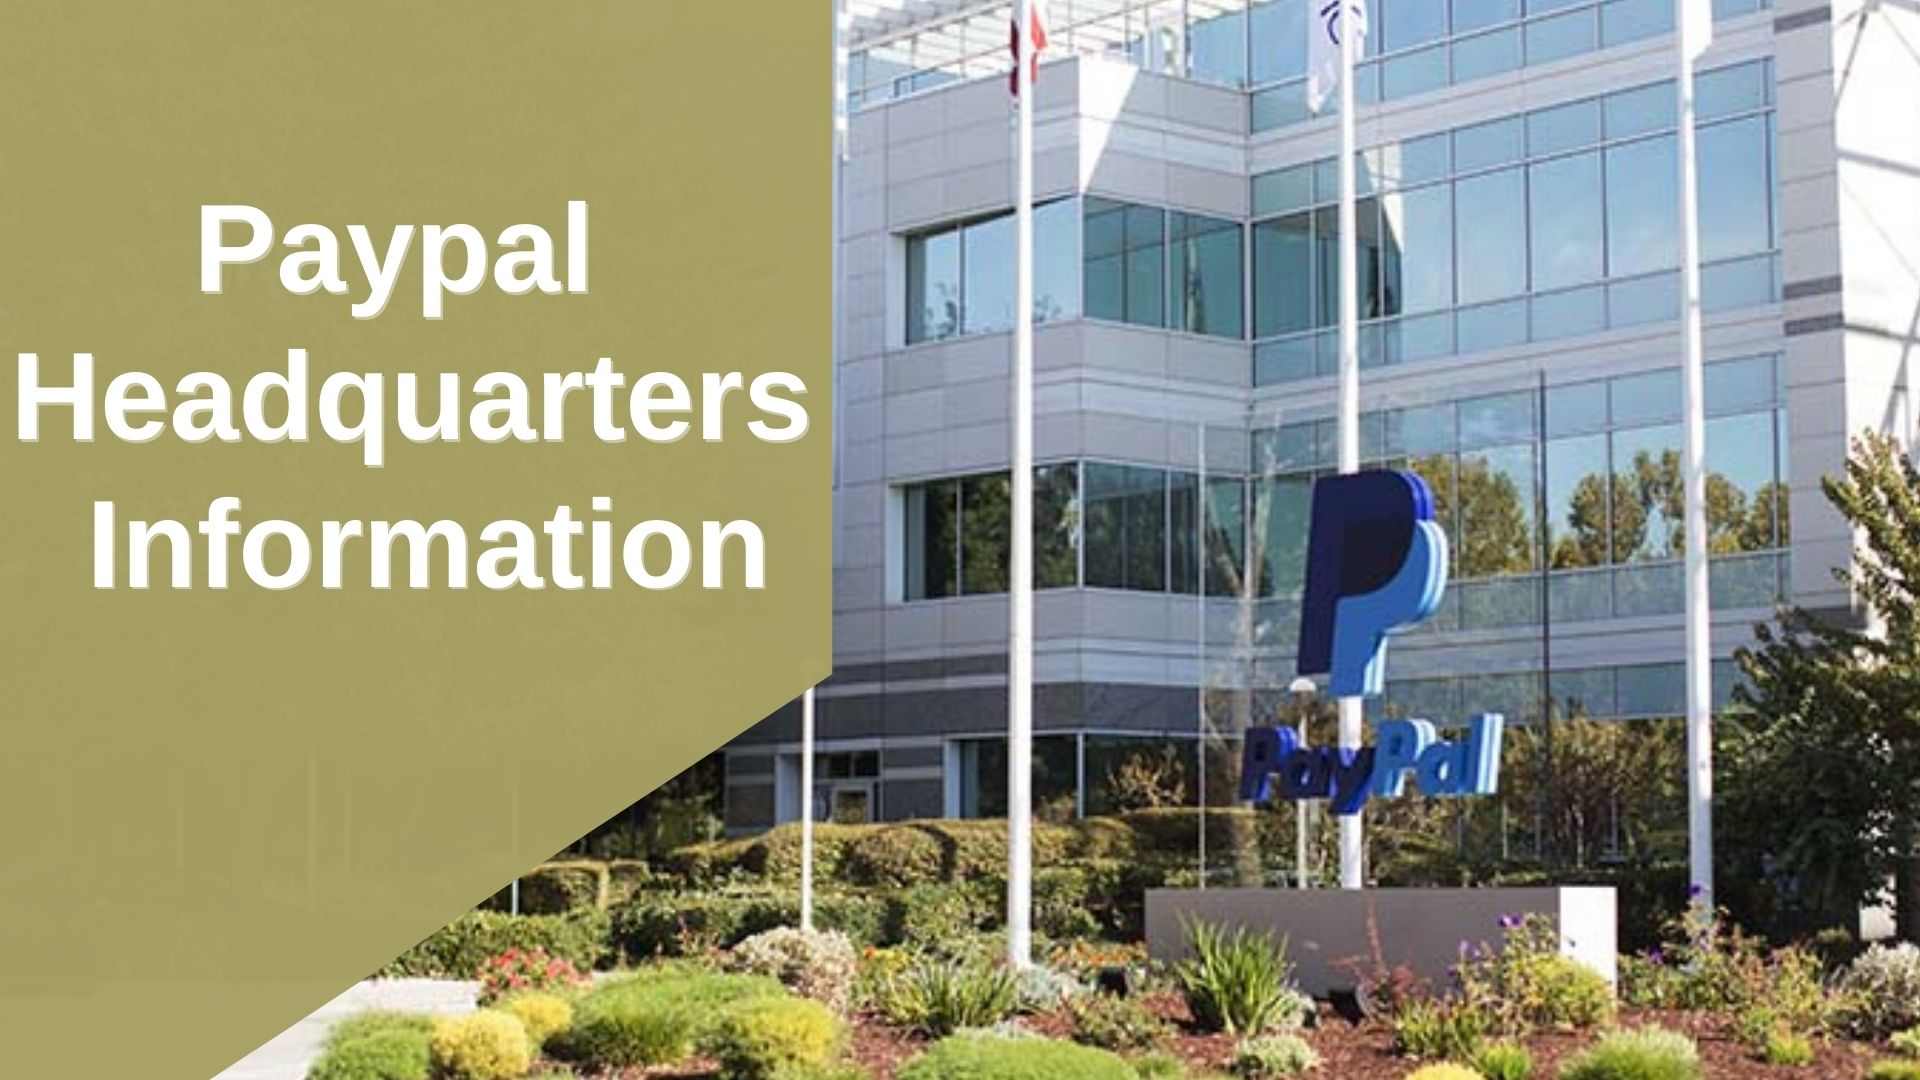 Paypal Headquarters Information